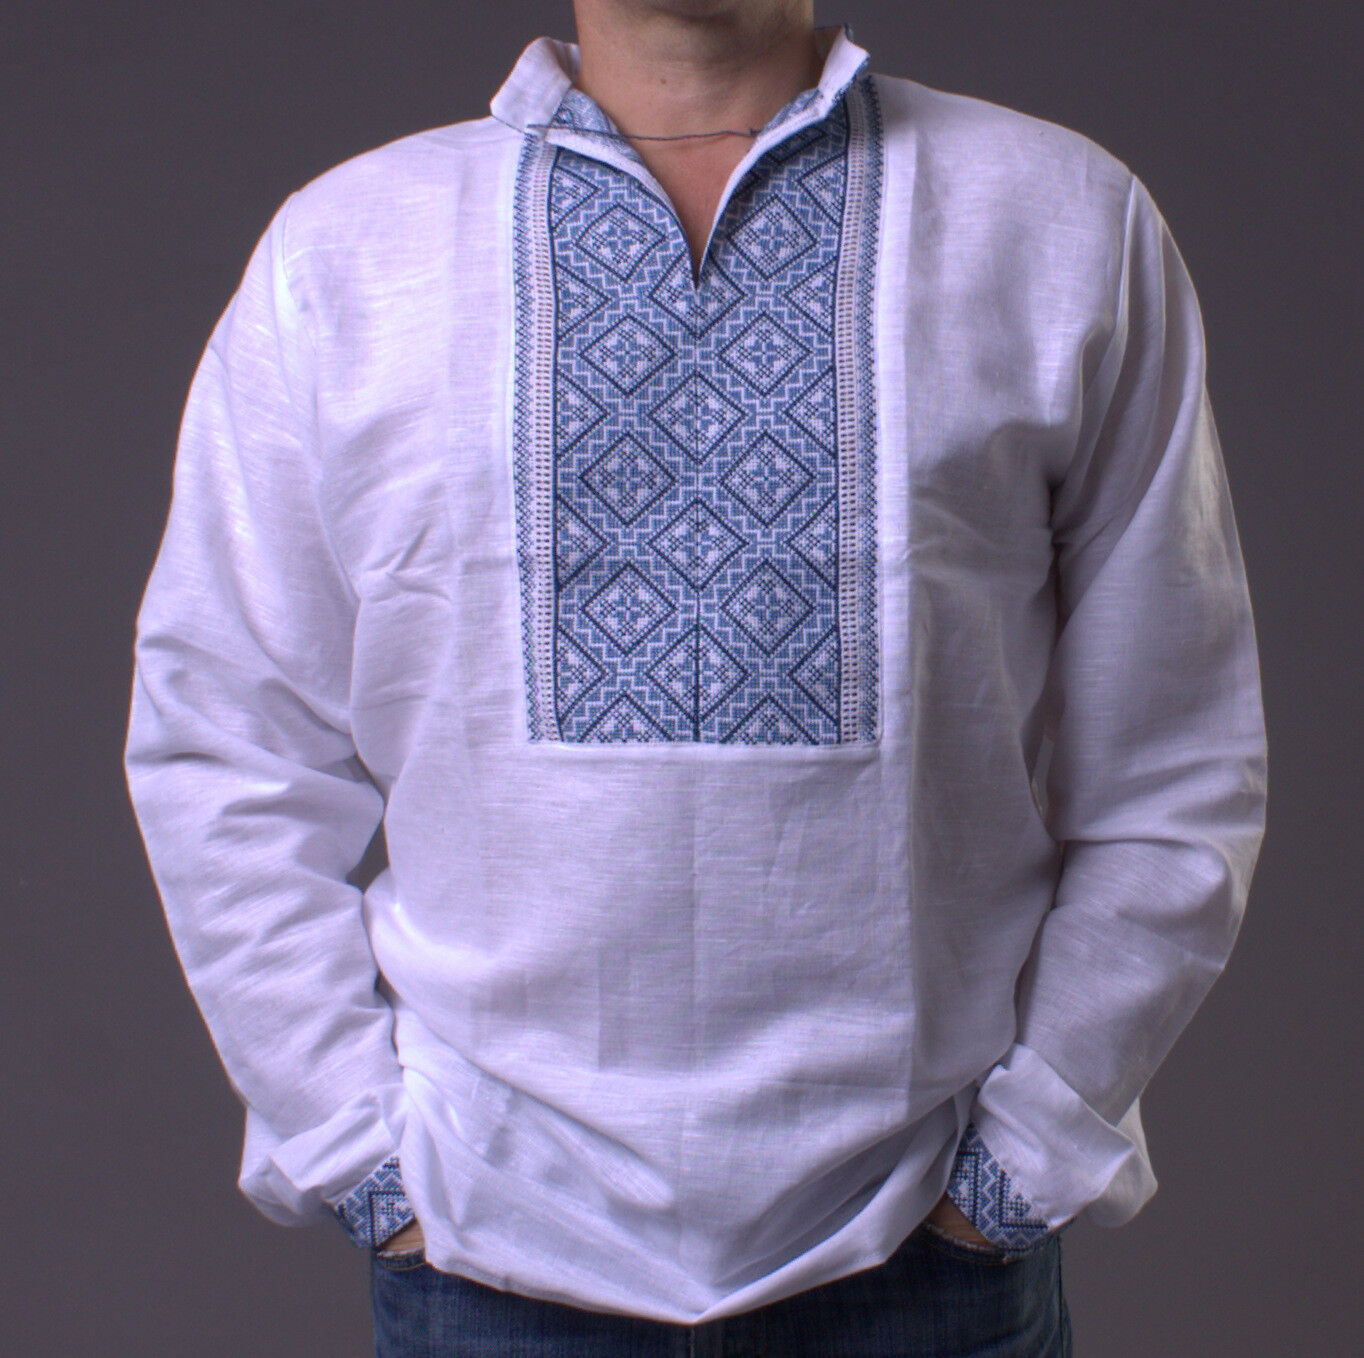 VYSHYVANKA Mens Ukrainian Embroidered LINEN White SHIRT L GIFT FOR DAD IDEA